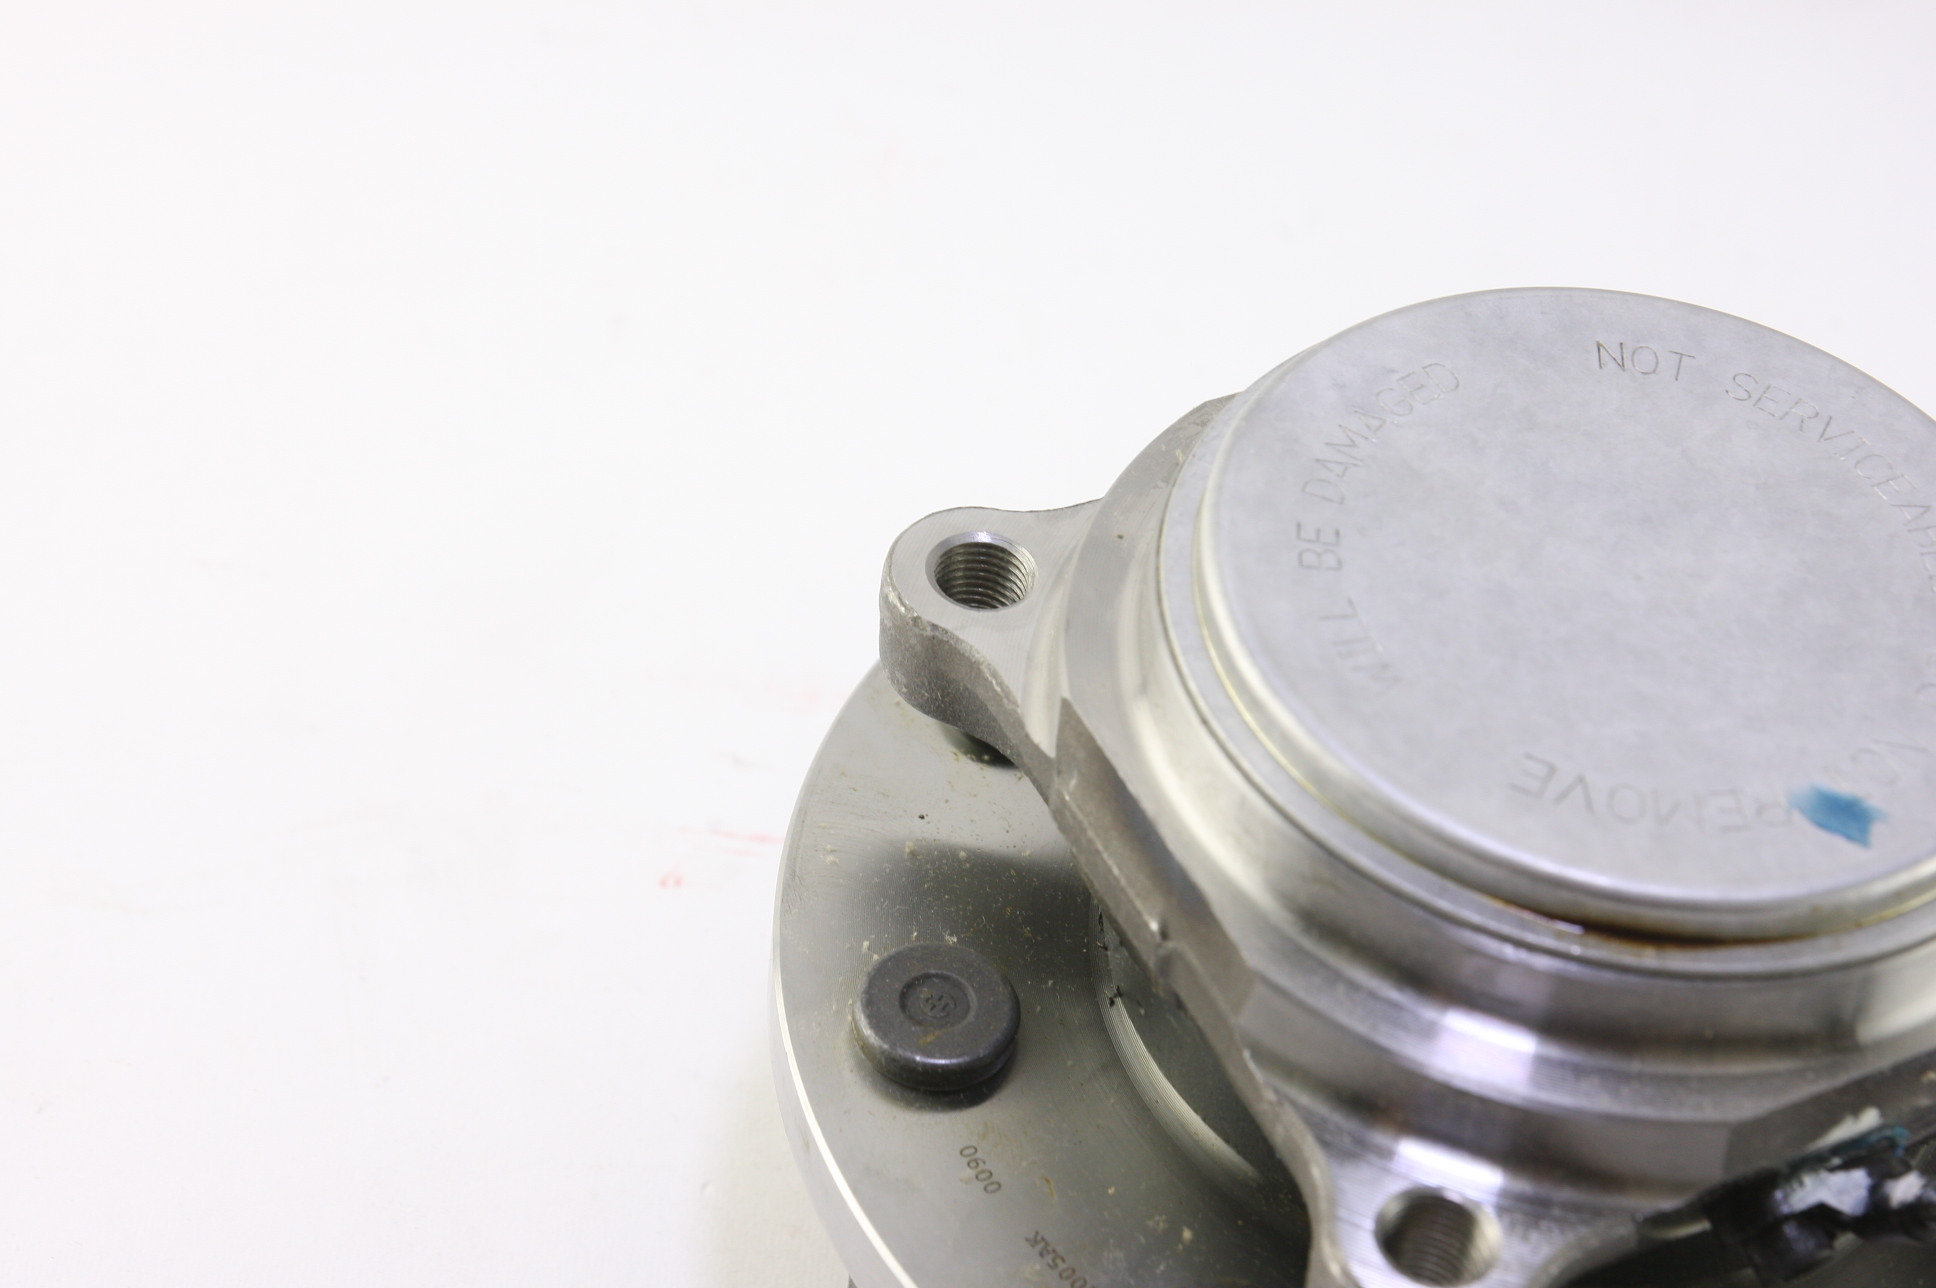 **** New Mopar OEM 52122186AB Disc Brake Hub and Bearing Fast Free Shipping - image 9